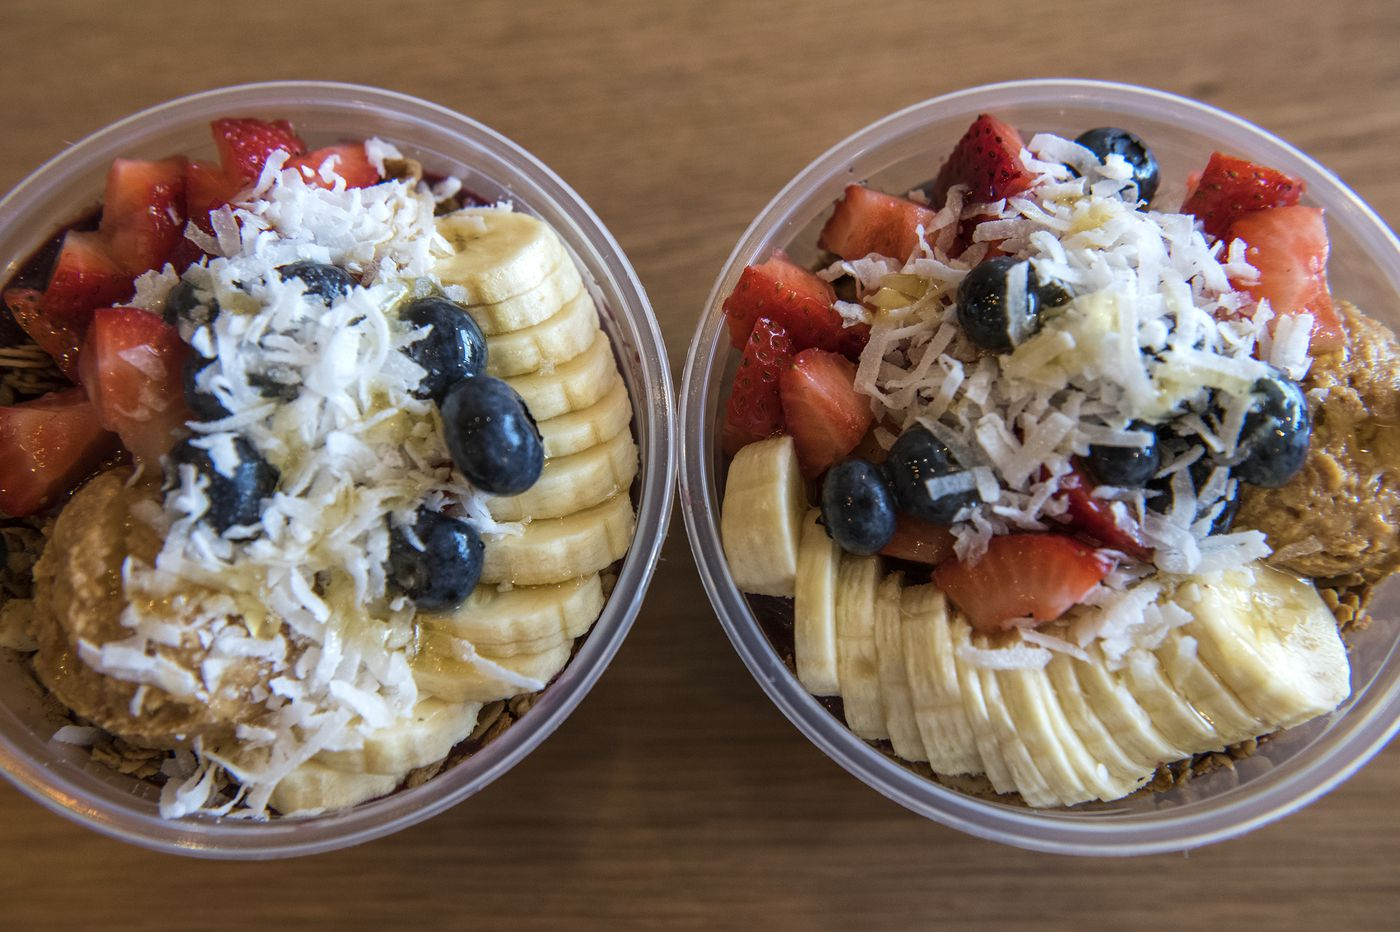 Acai, the super food super trend that's good for you, and good for business